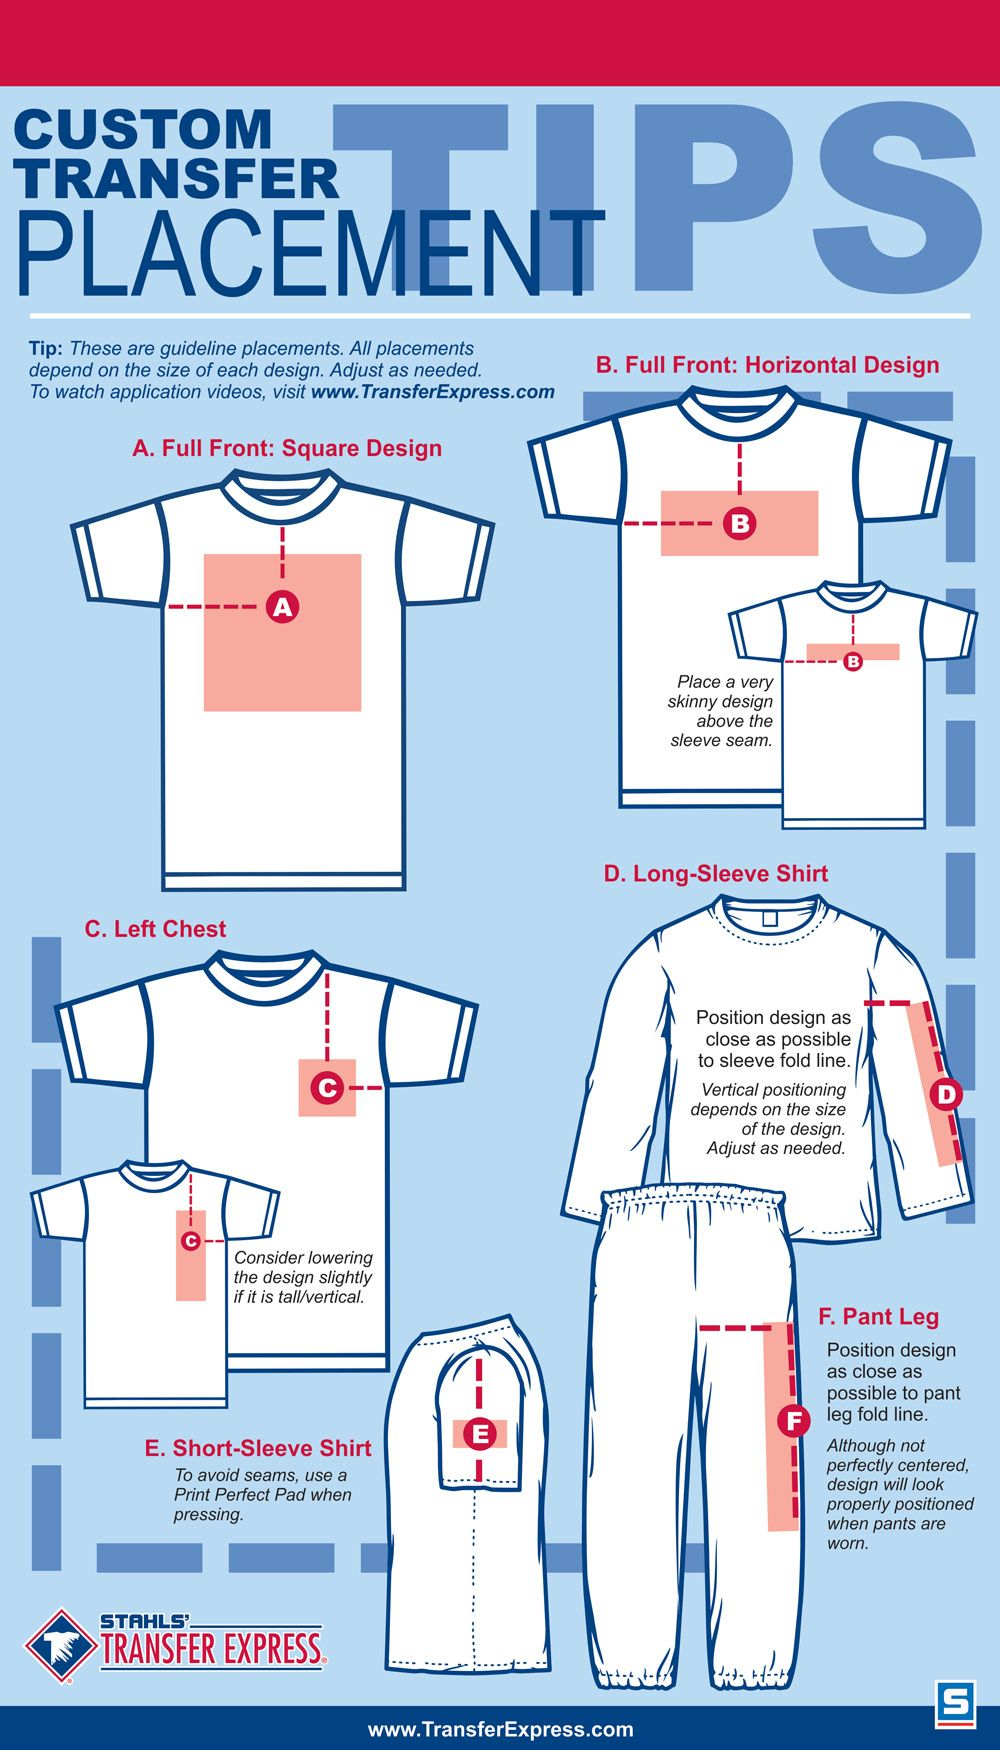 Tips for design image placement when customizing apparel